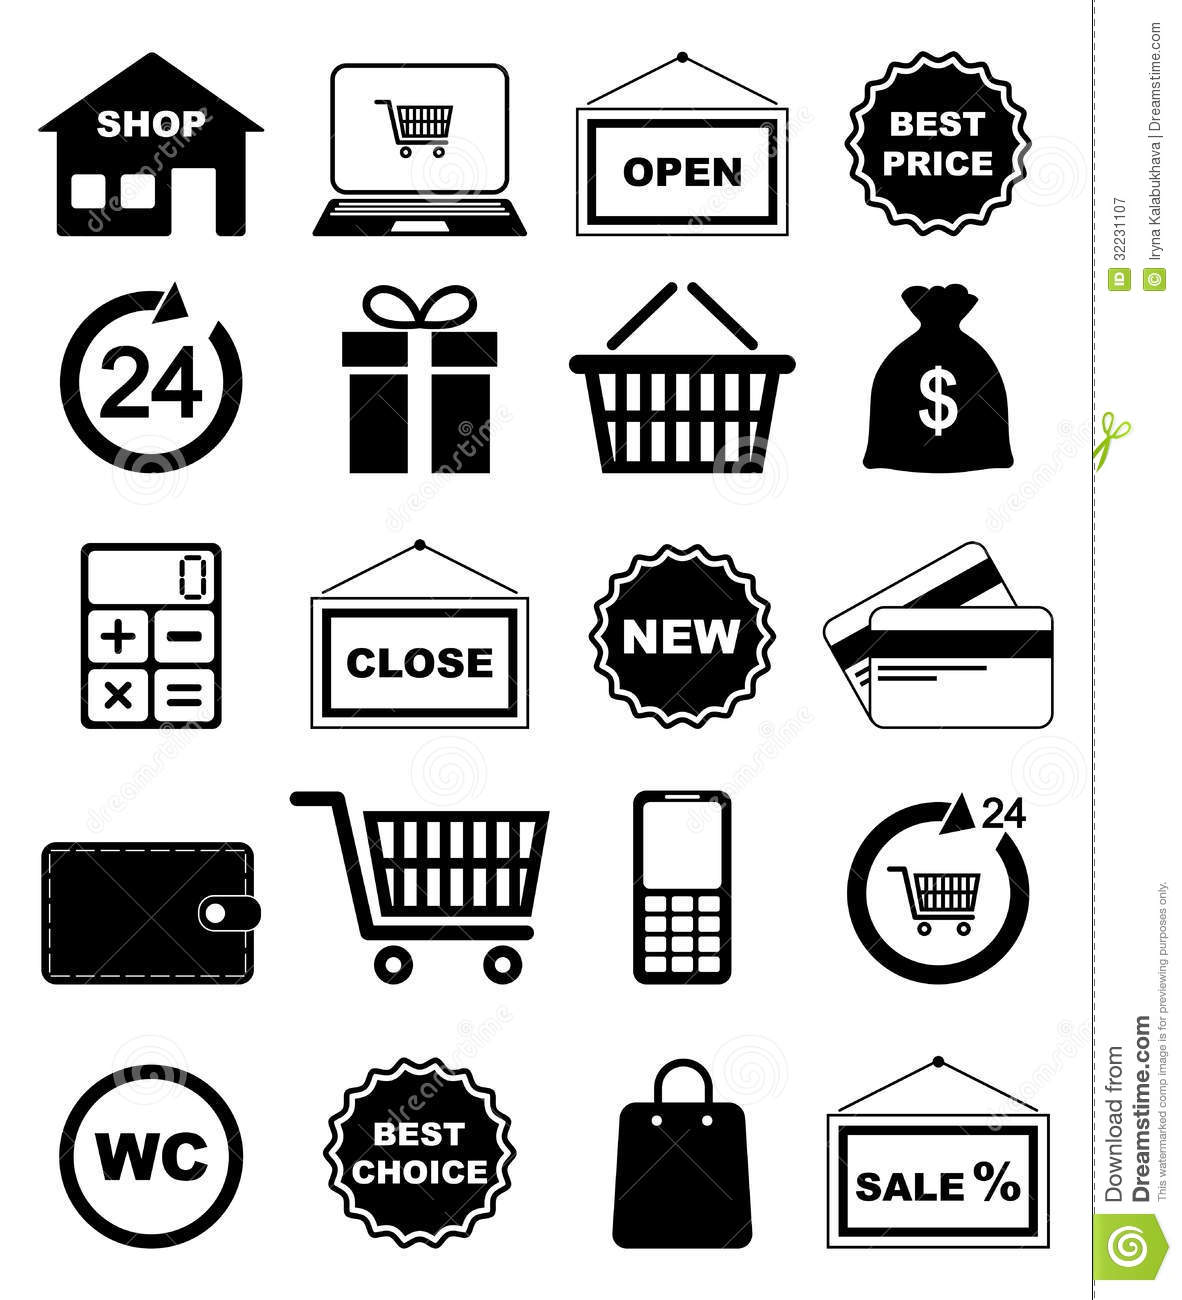 Shopping icons royalty free stock photography image 32231107